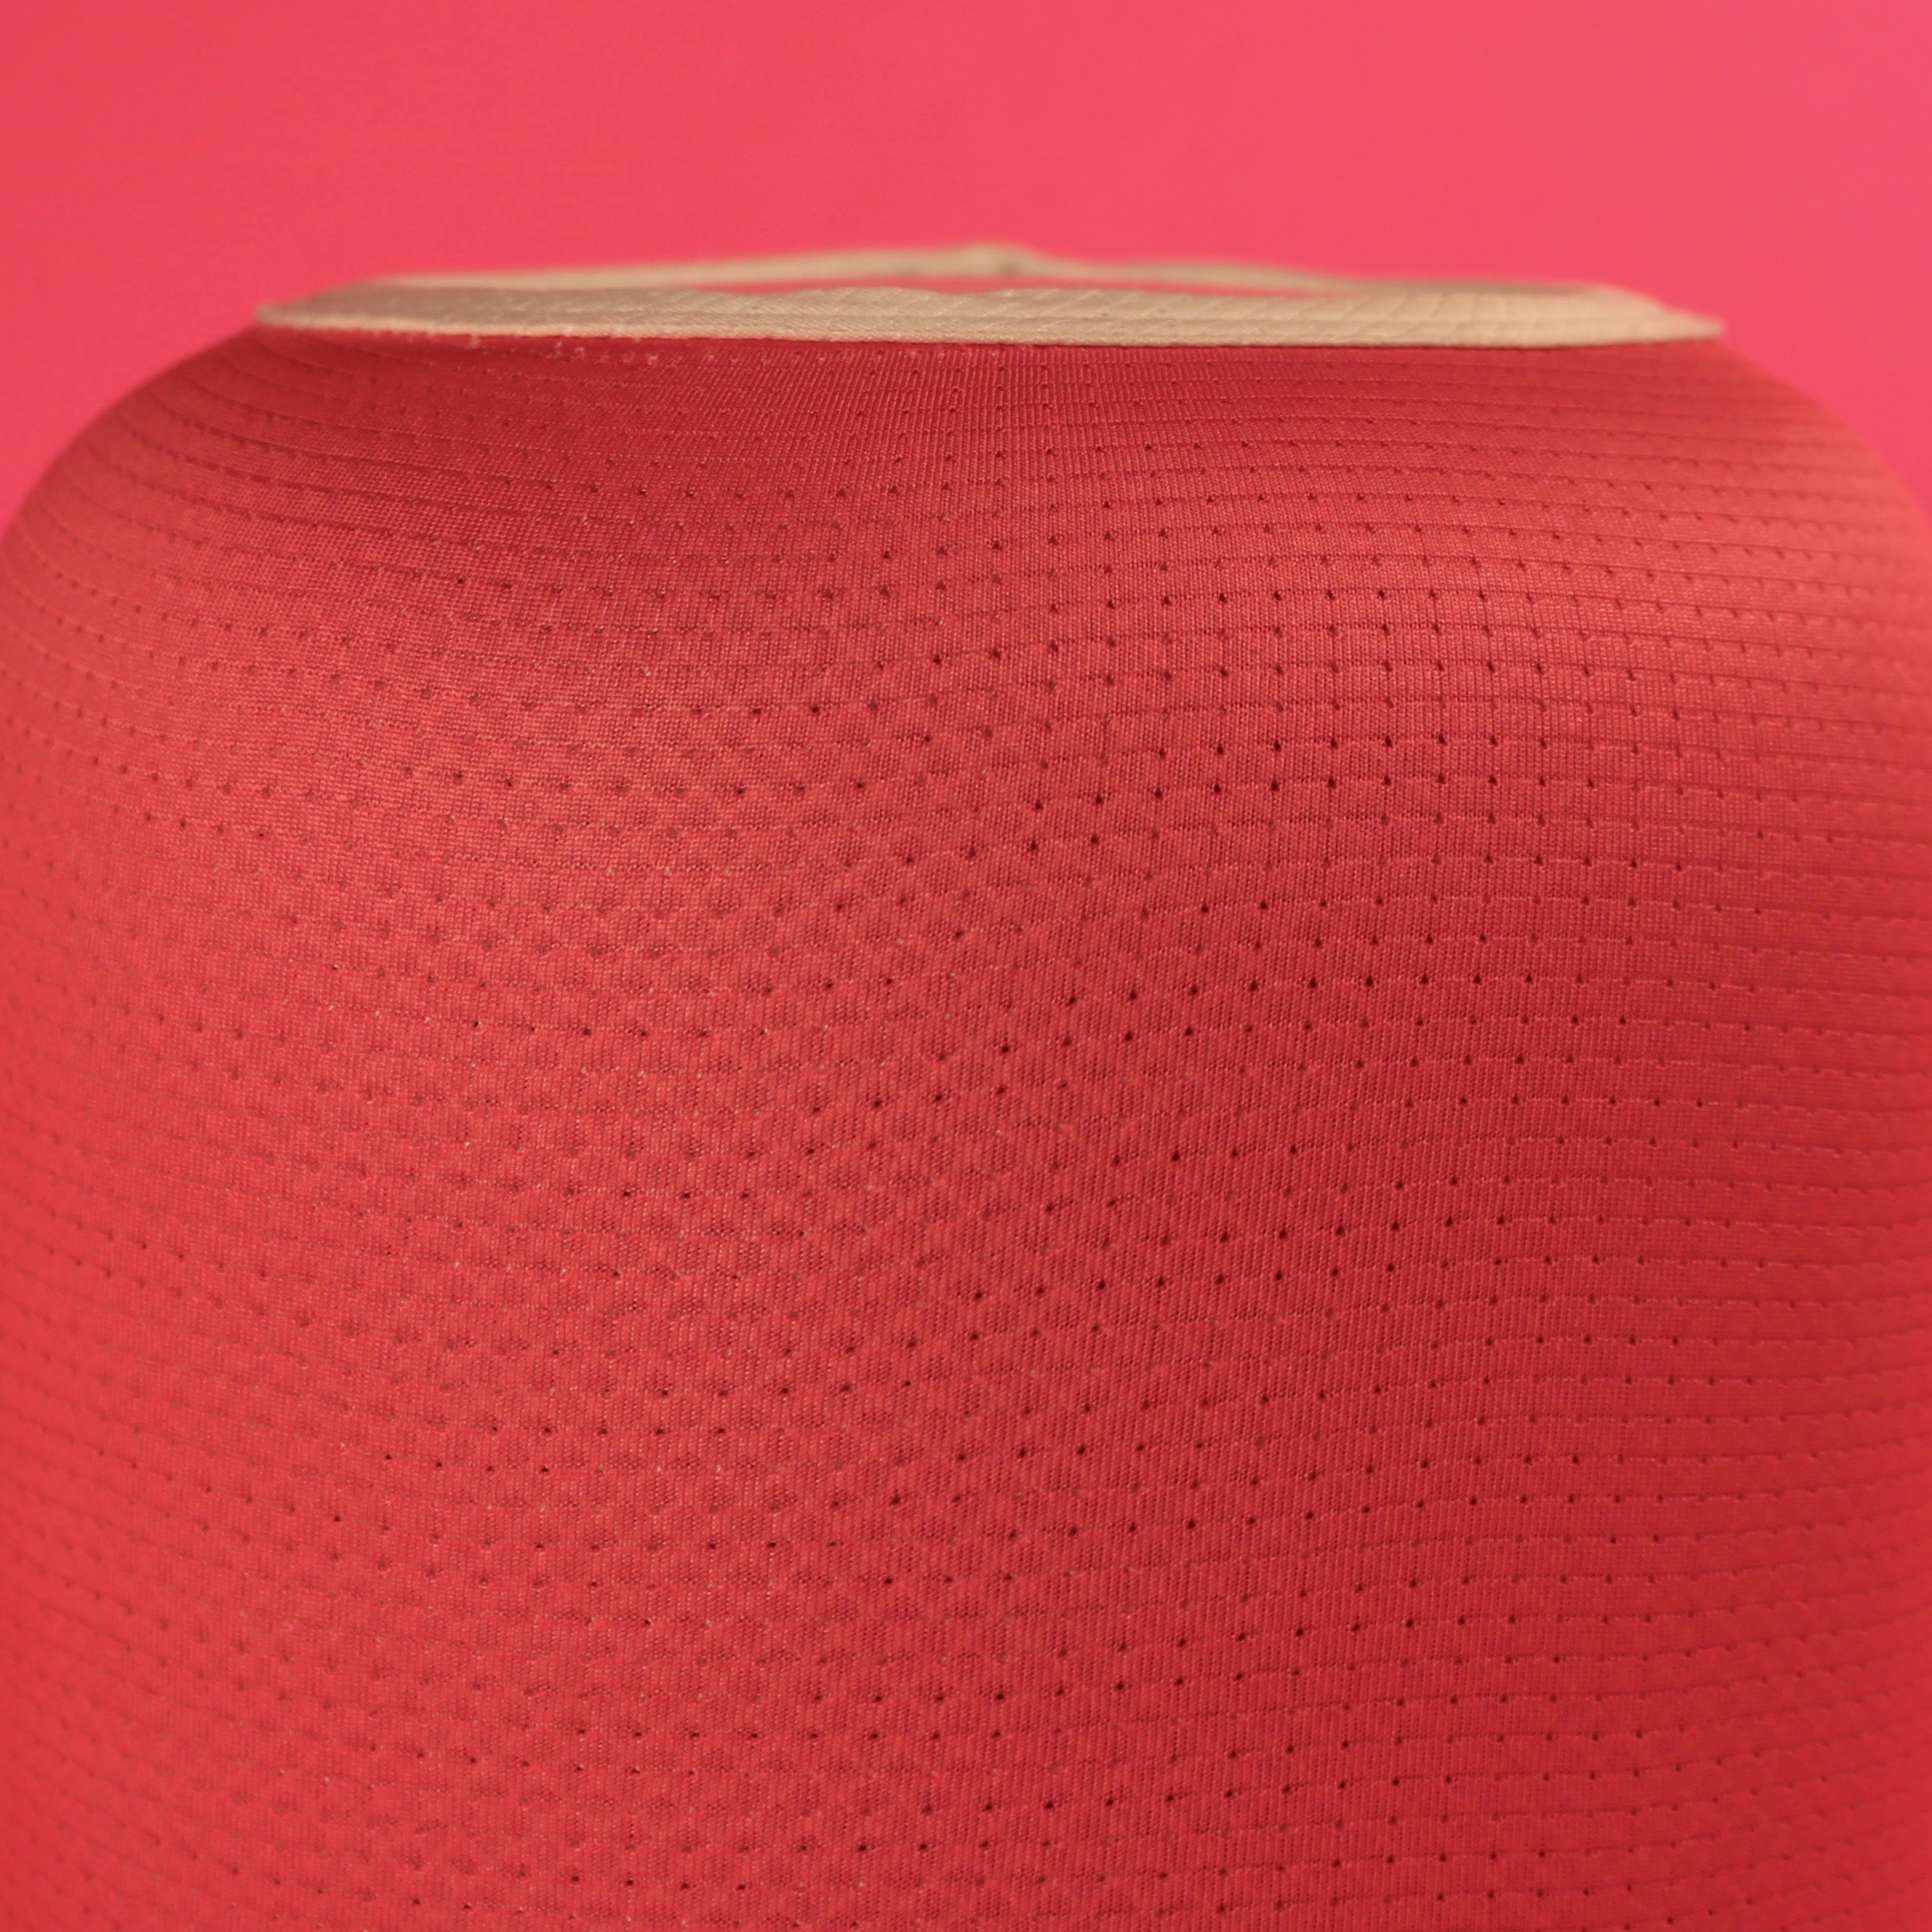 HomePod Sleeve - Bring your HomePod to life! Pink